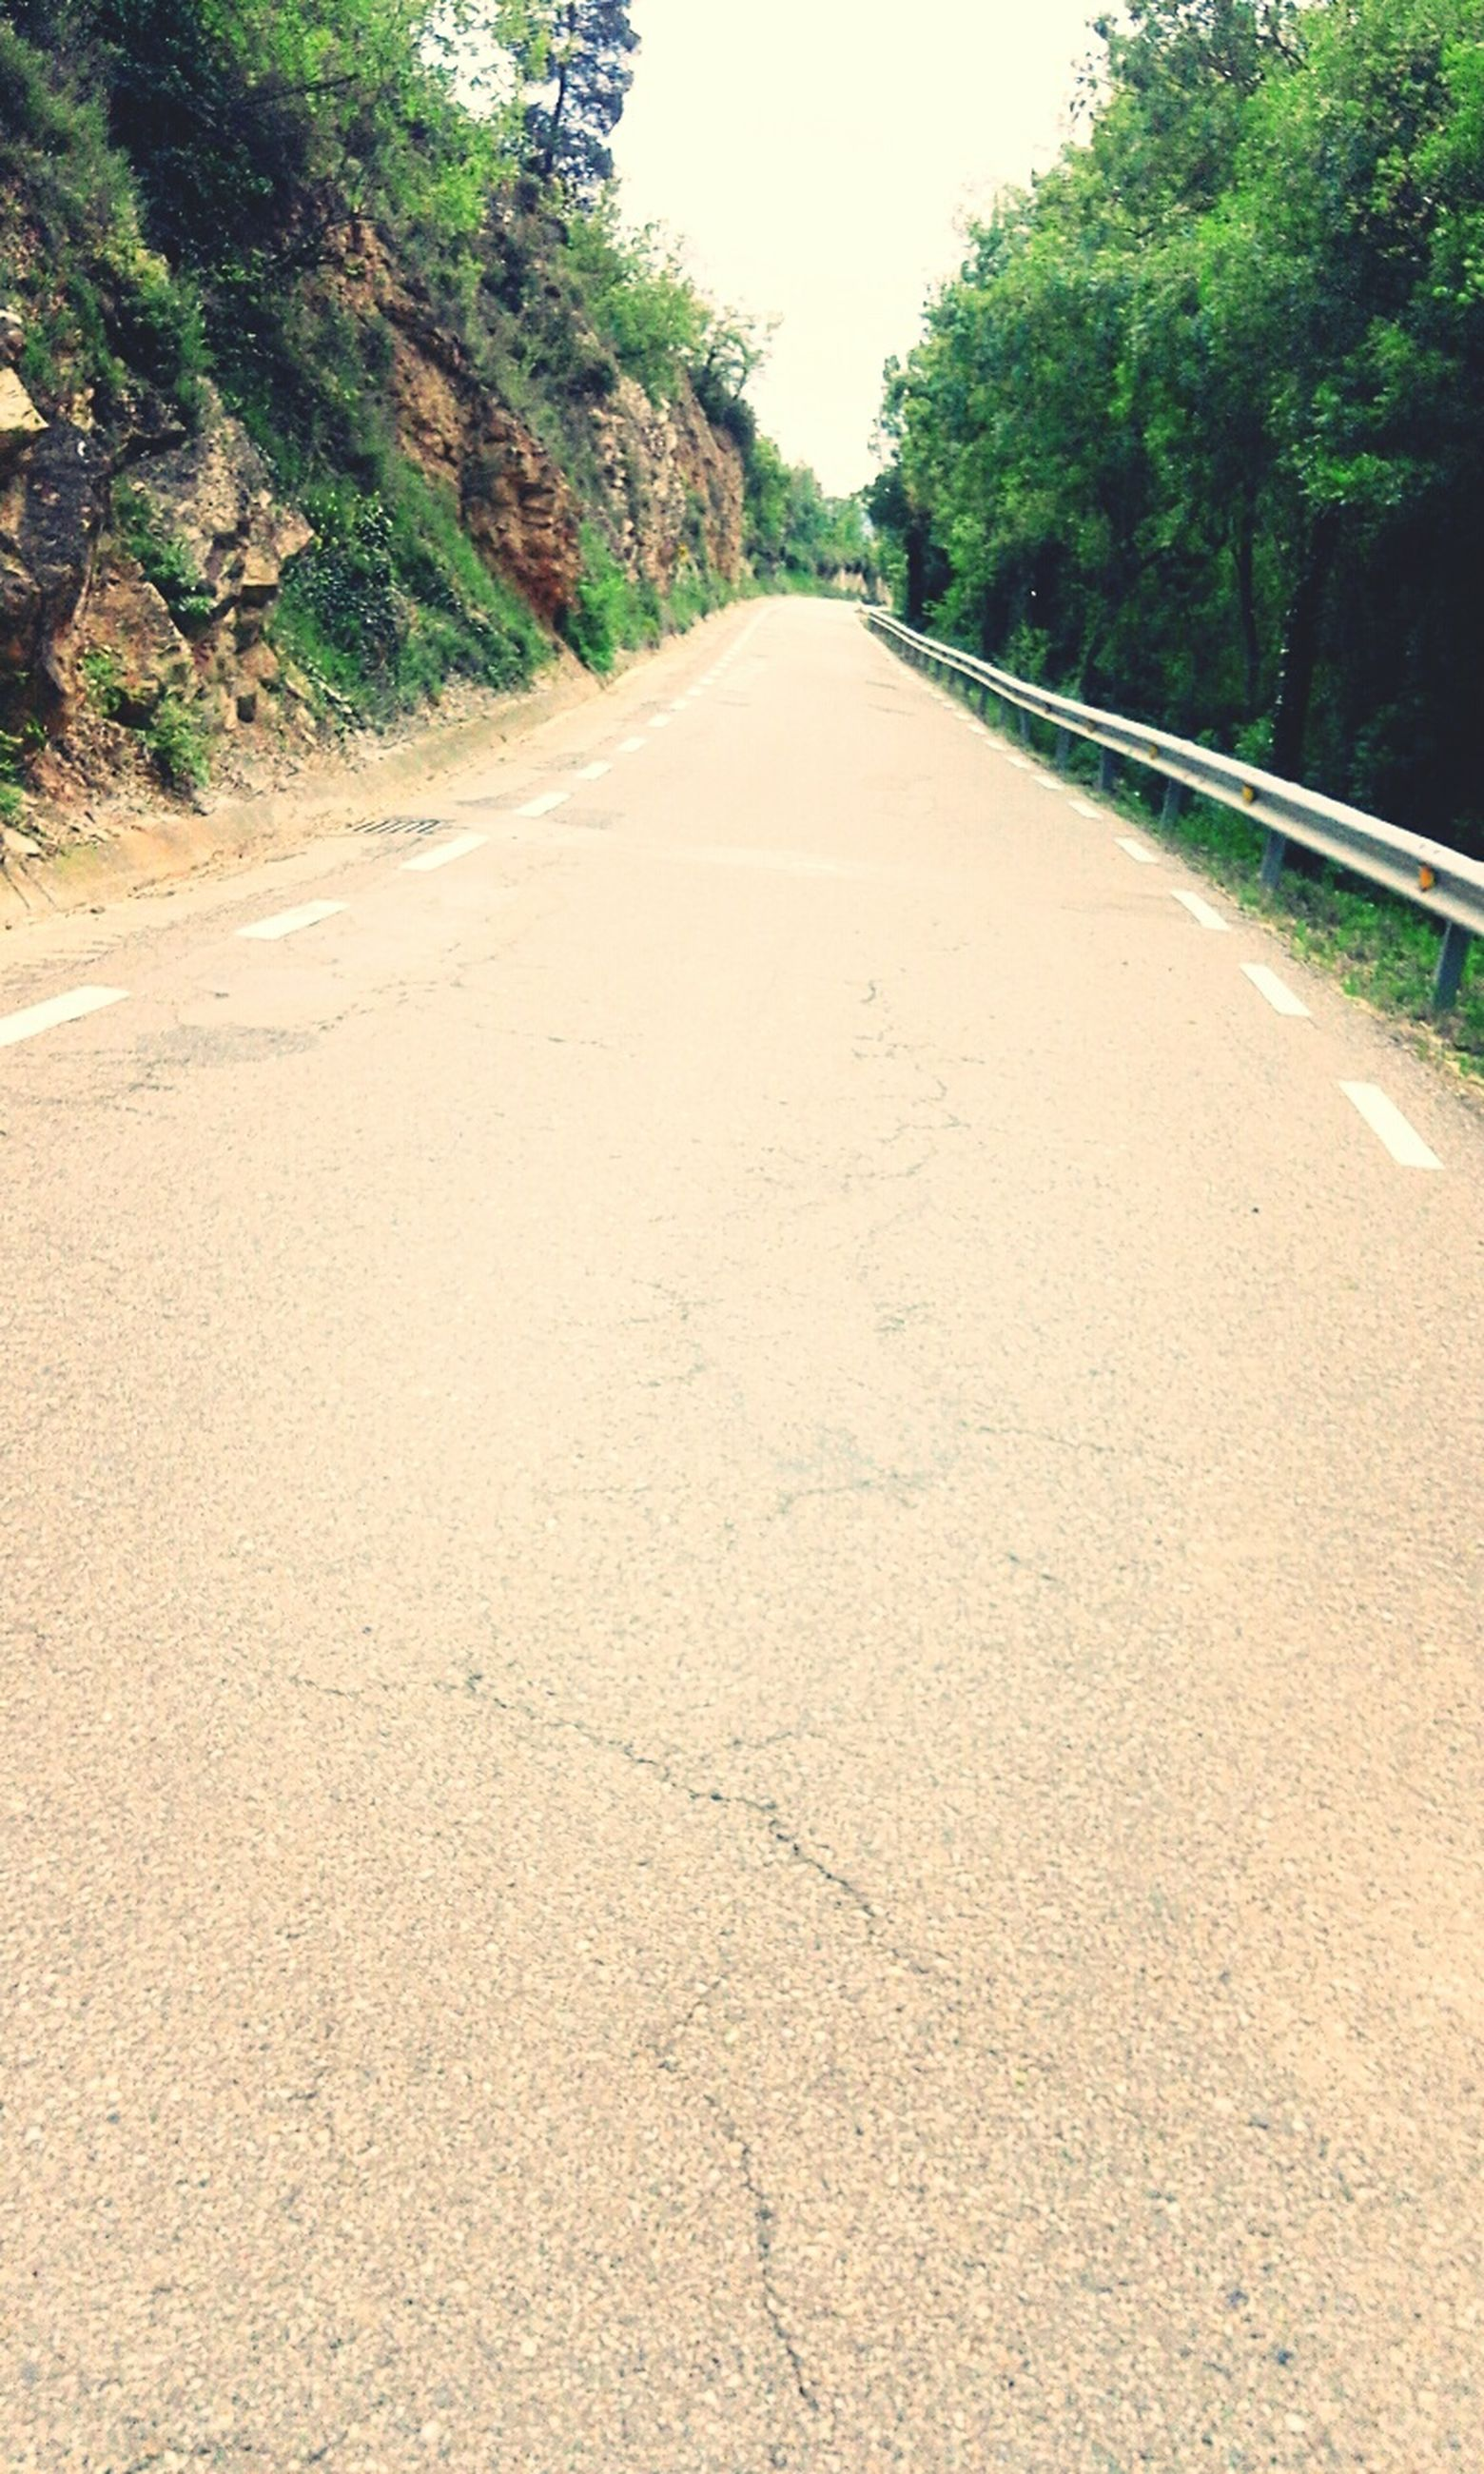 road, the way forward, tree, transportation, diminishing perspective, no people, day, nature, outdoors, growth, scenics, sky